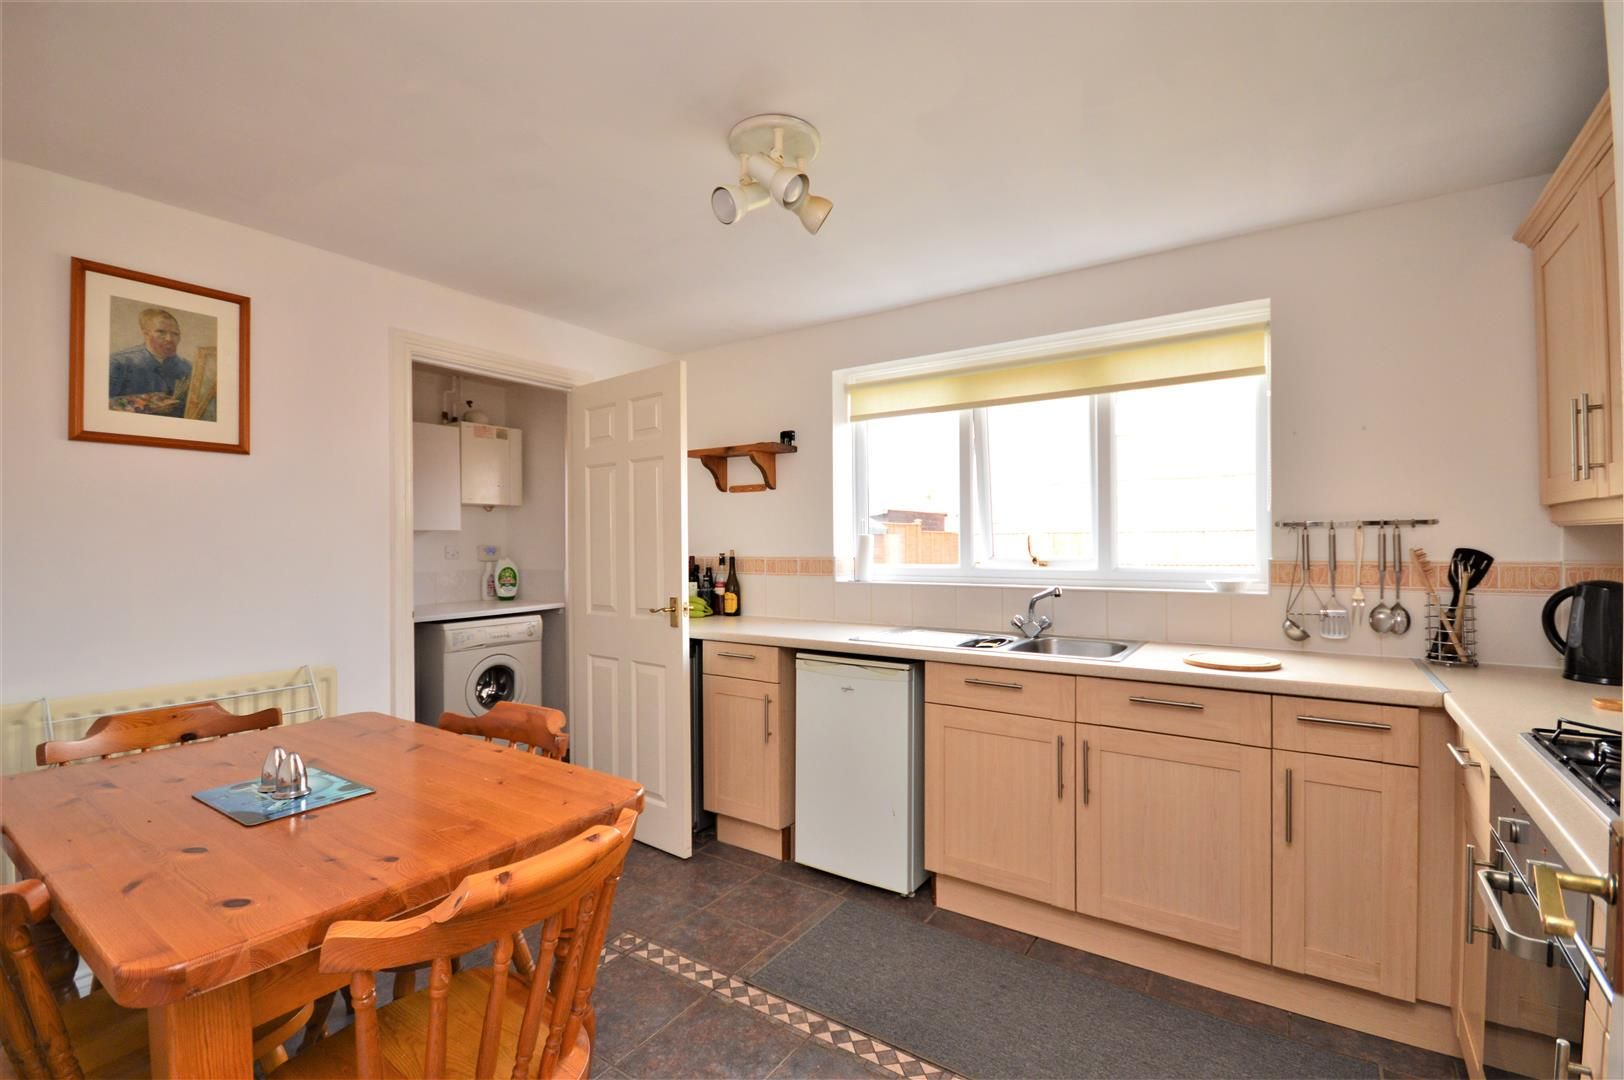 4 bed detached for sale in Belmont 4